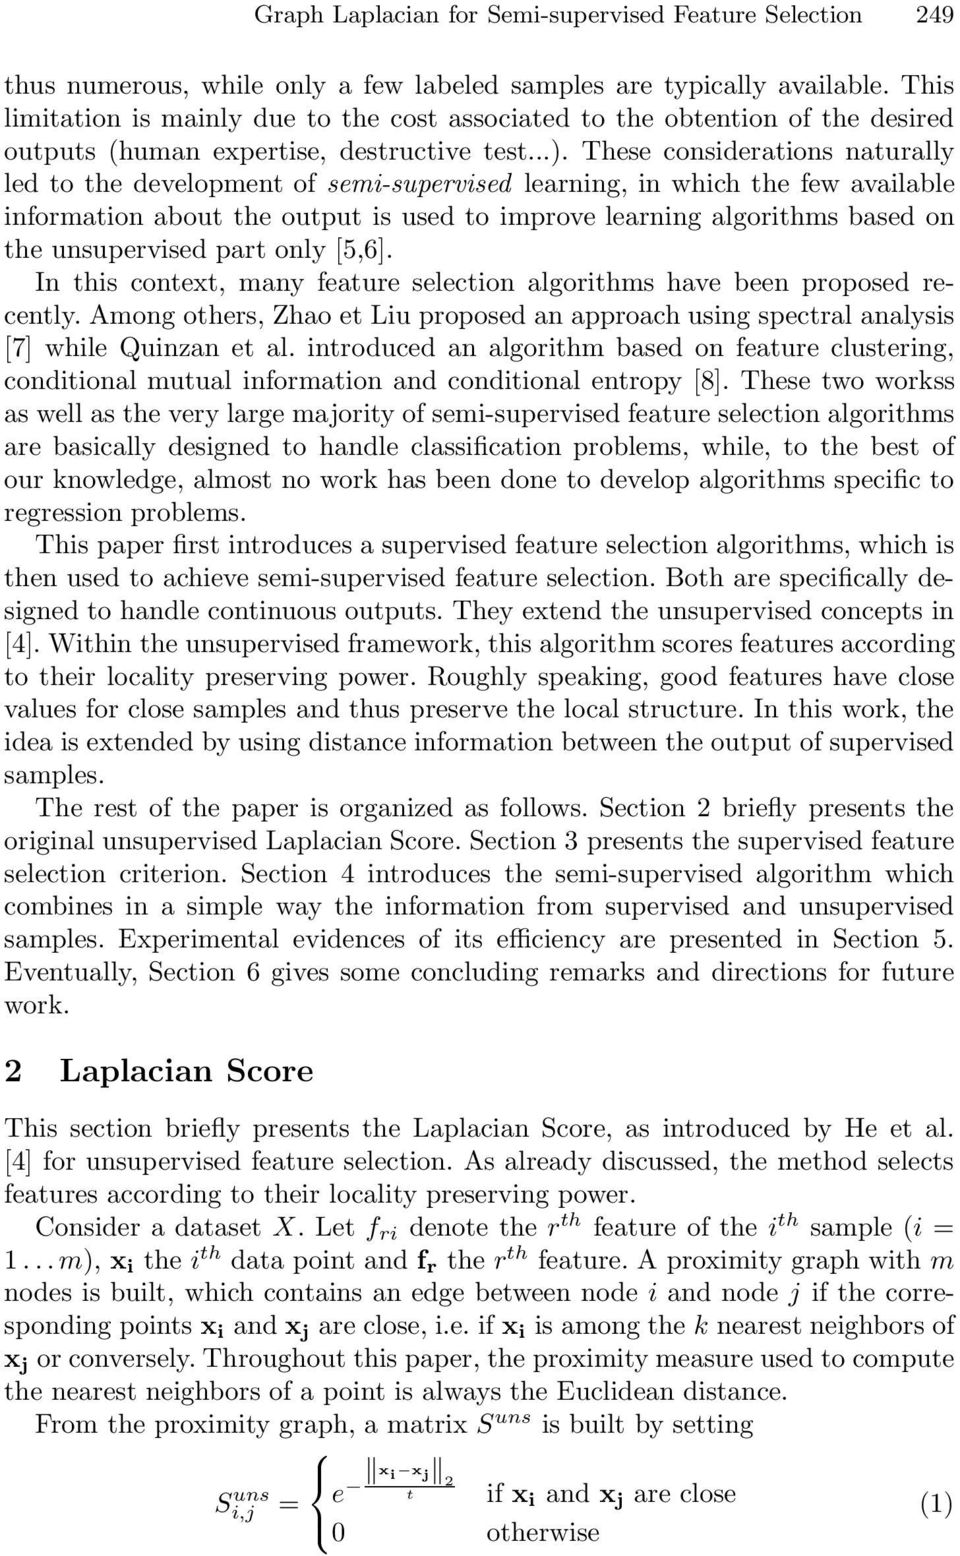 hese considerations naturally led to the development of semi-supervised learning, in which the few available information about the output is used to improve learning algorithms based on the